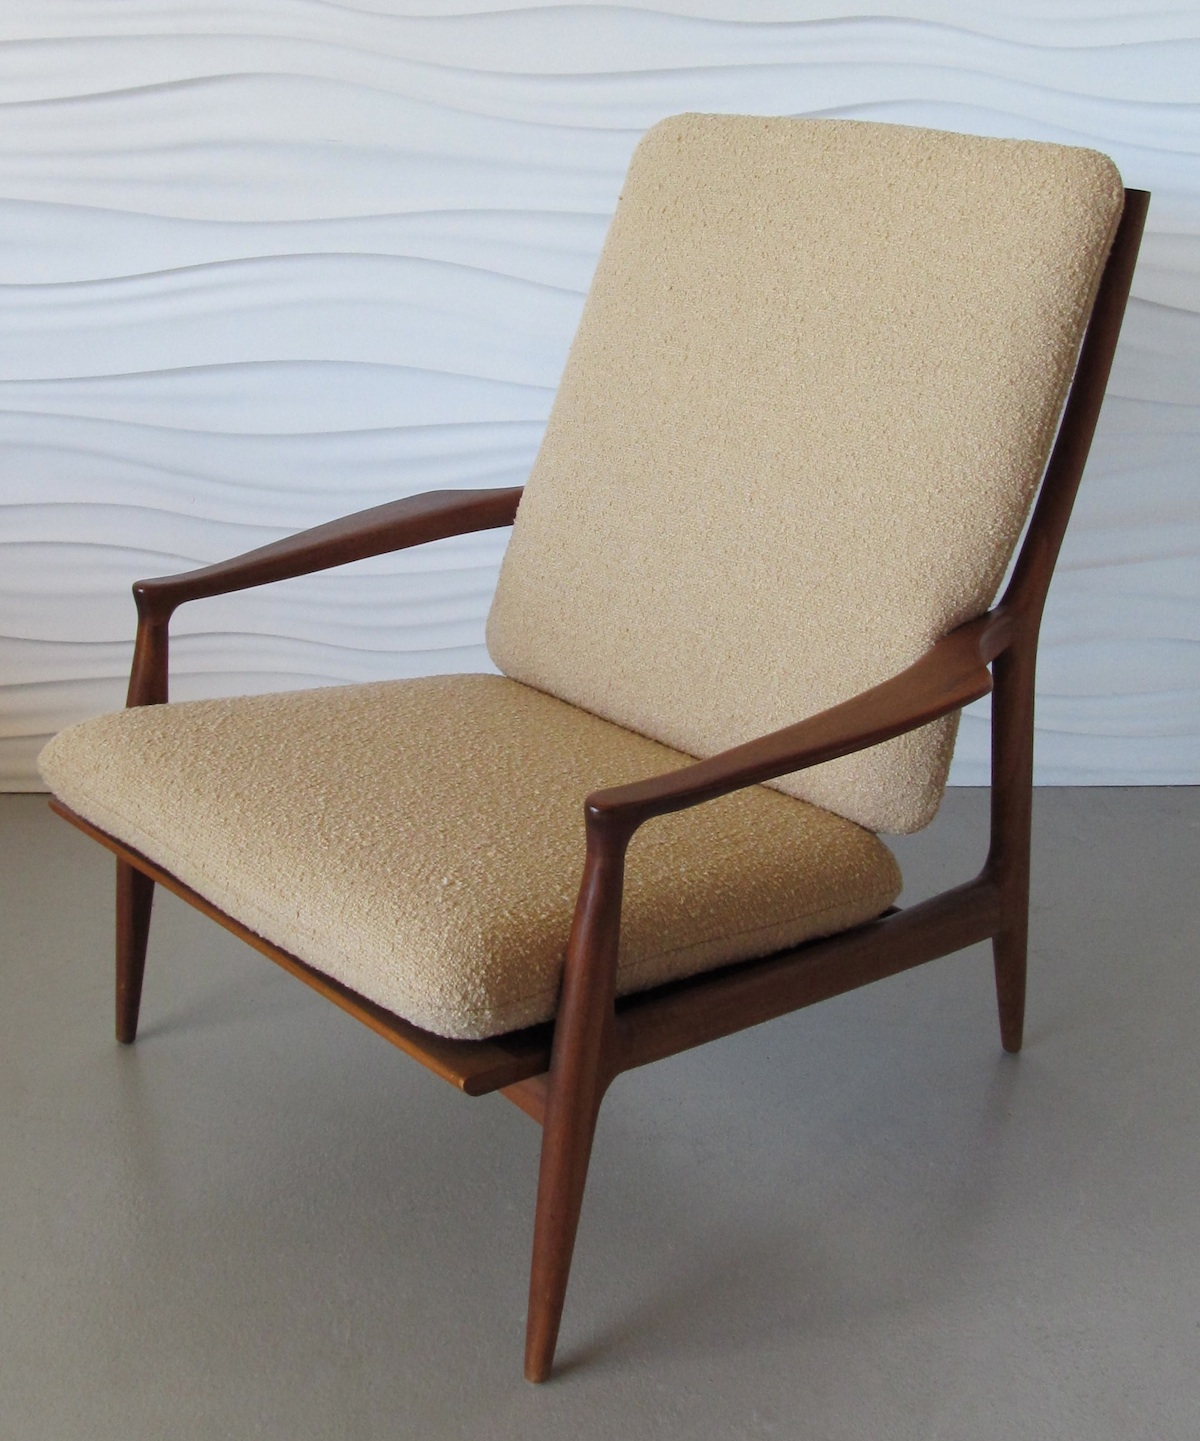 Modern Lounge Chairs Danish Modern Lounge Chair Modern Chair Restoration